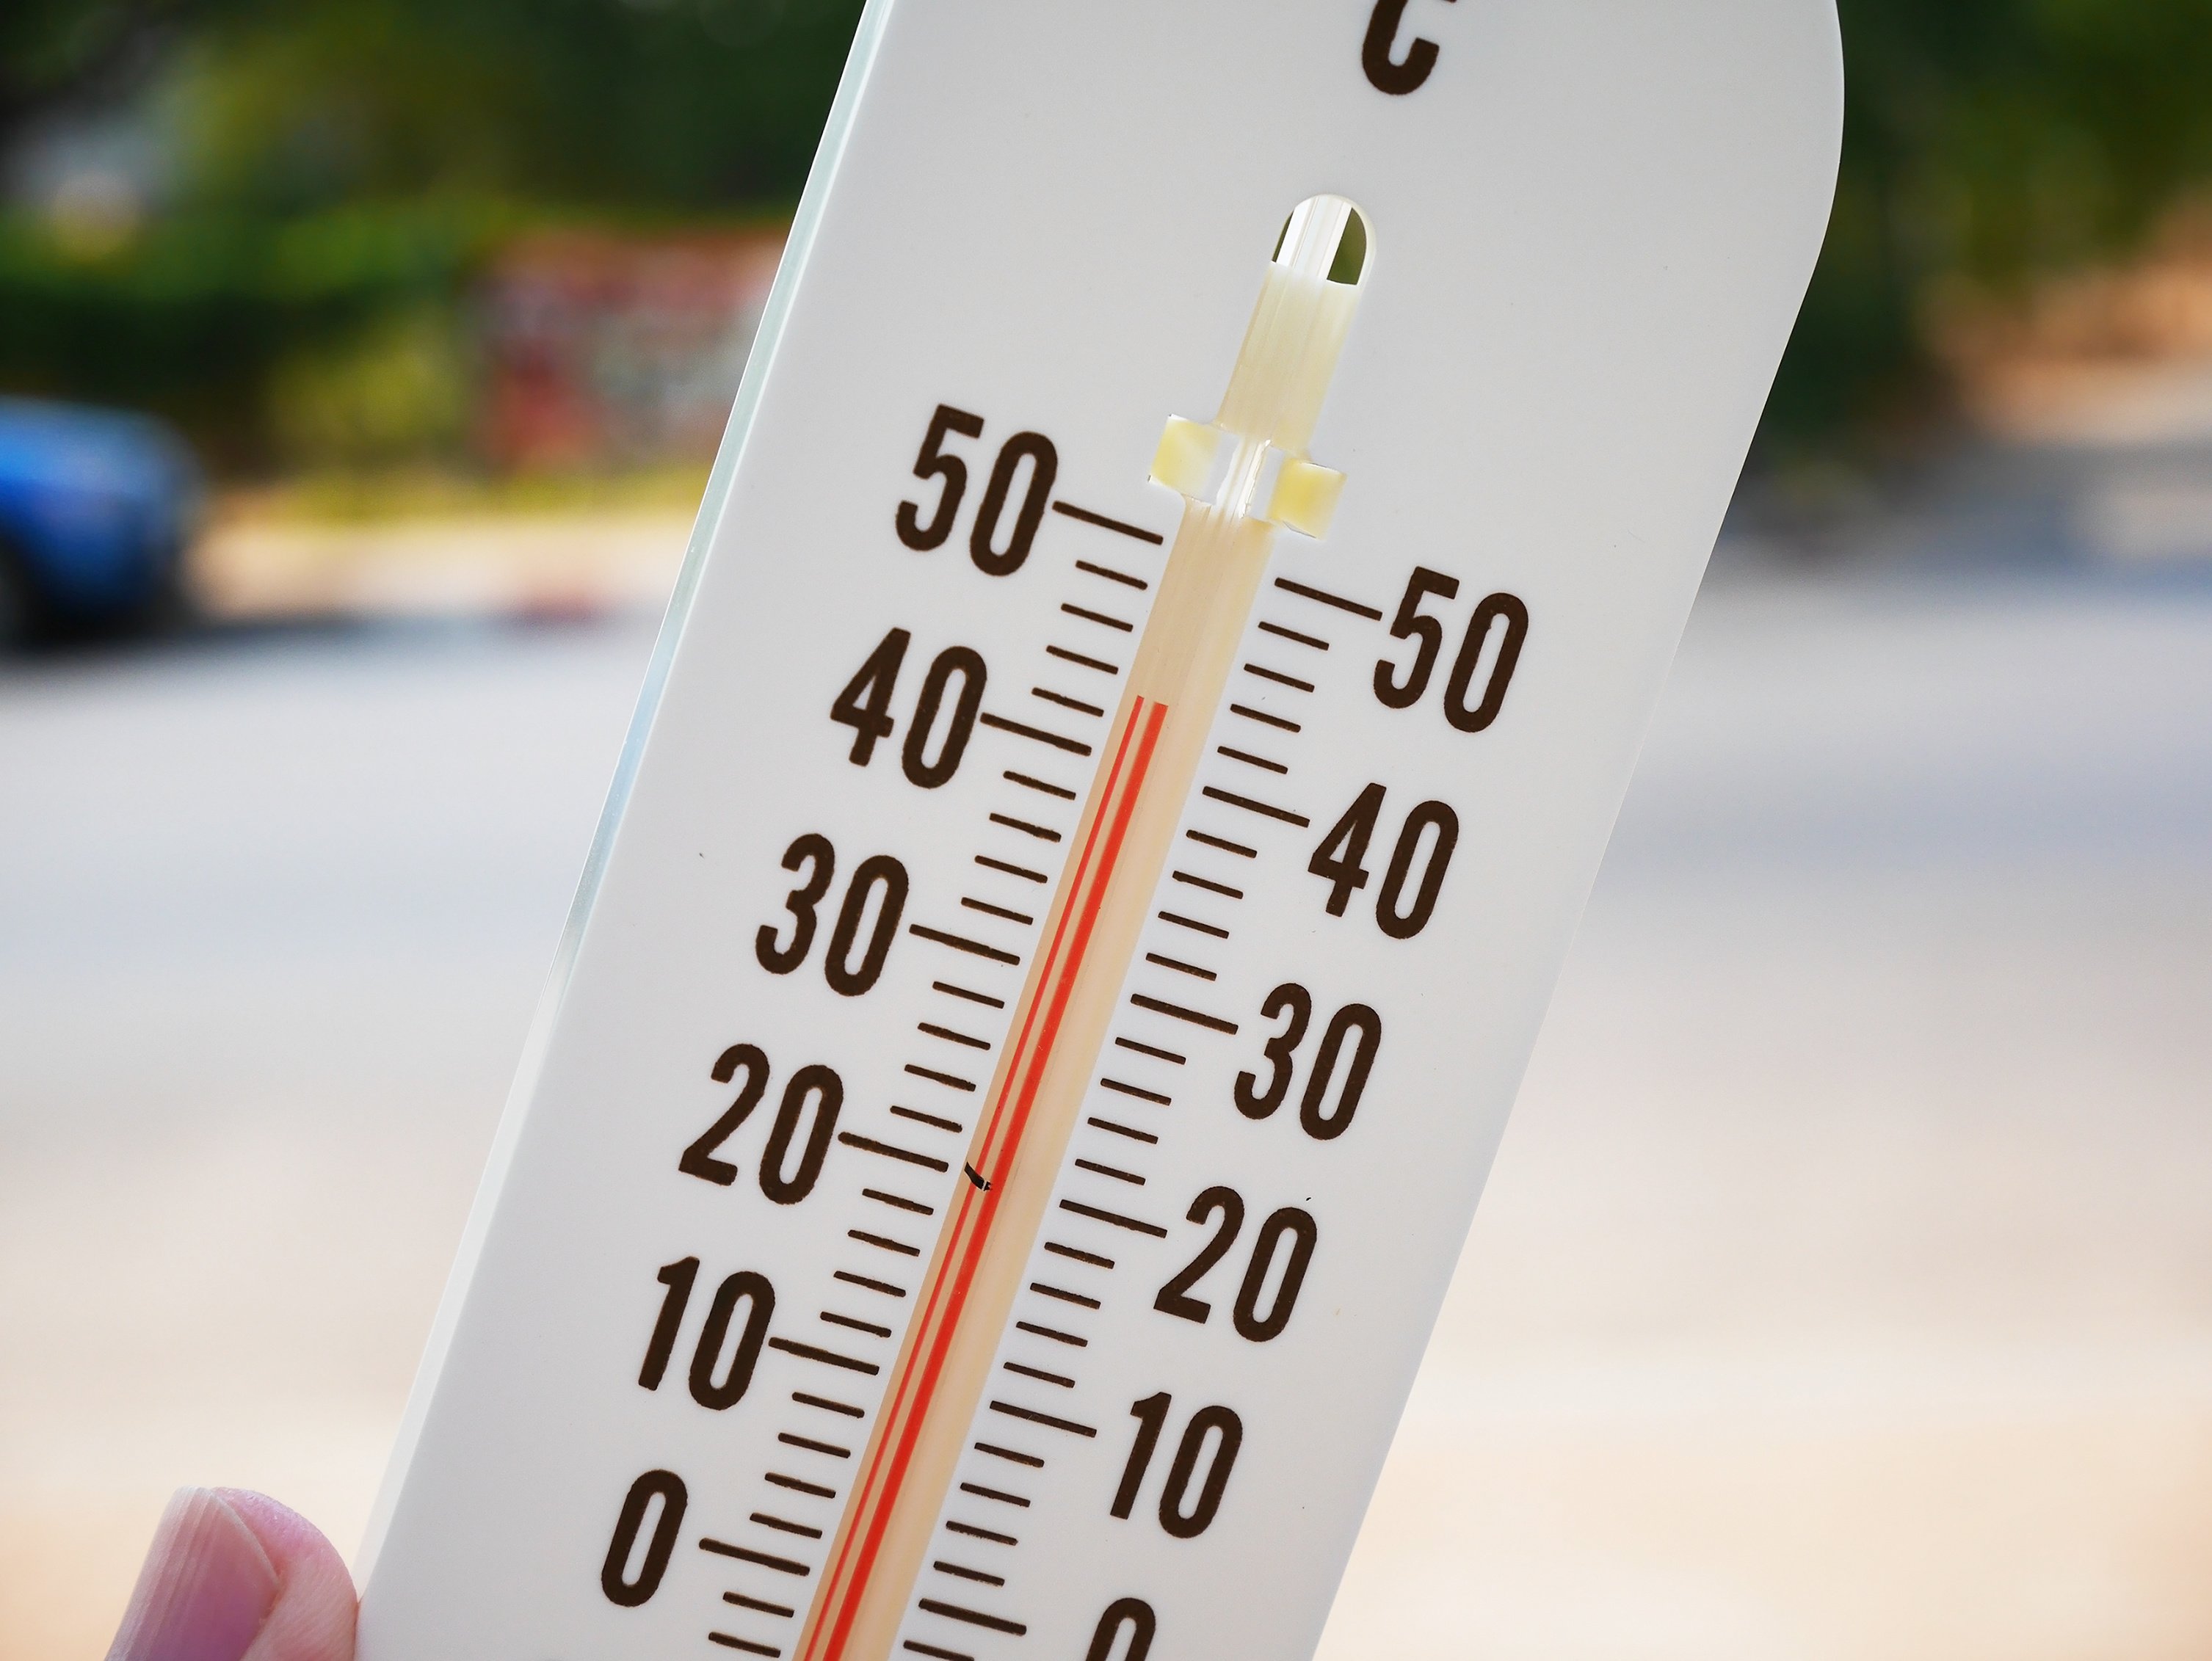 hand hold thermometer showing temperature in degrees Celsius, Hot temperature